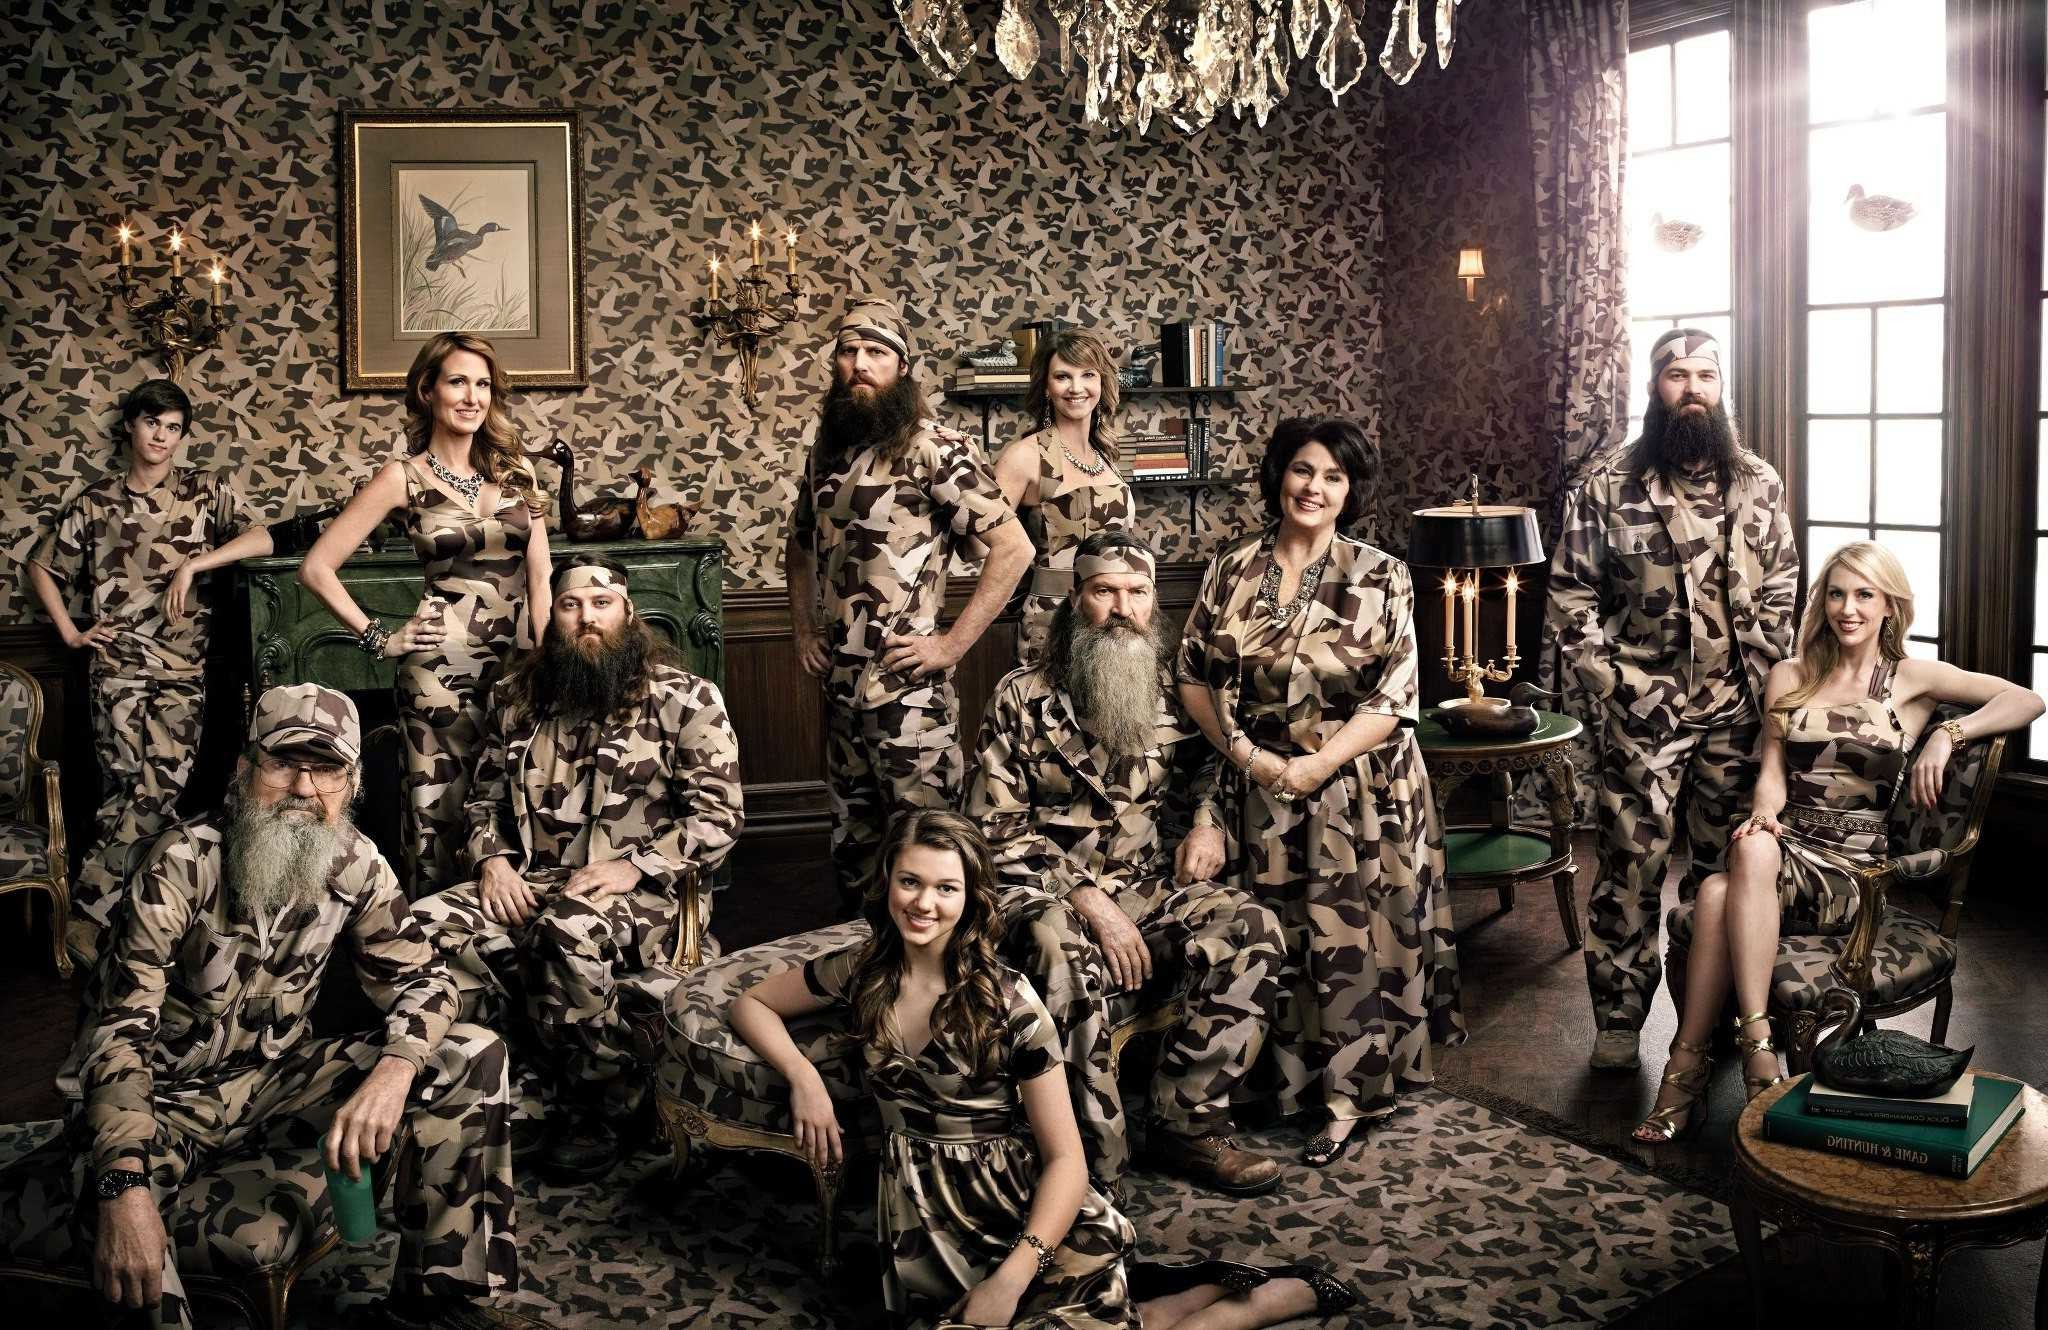 Res: 2048x1330, Duck Dynasty Wallpapers 2 - 2048 X 1330